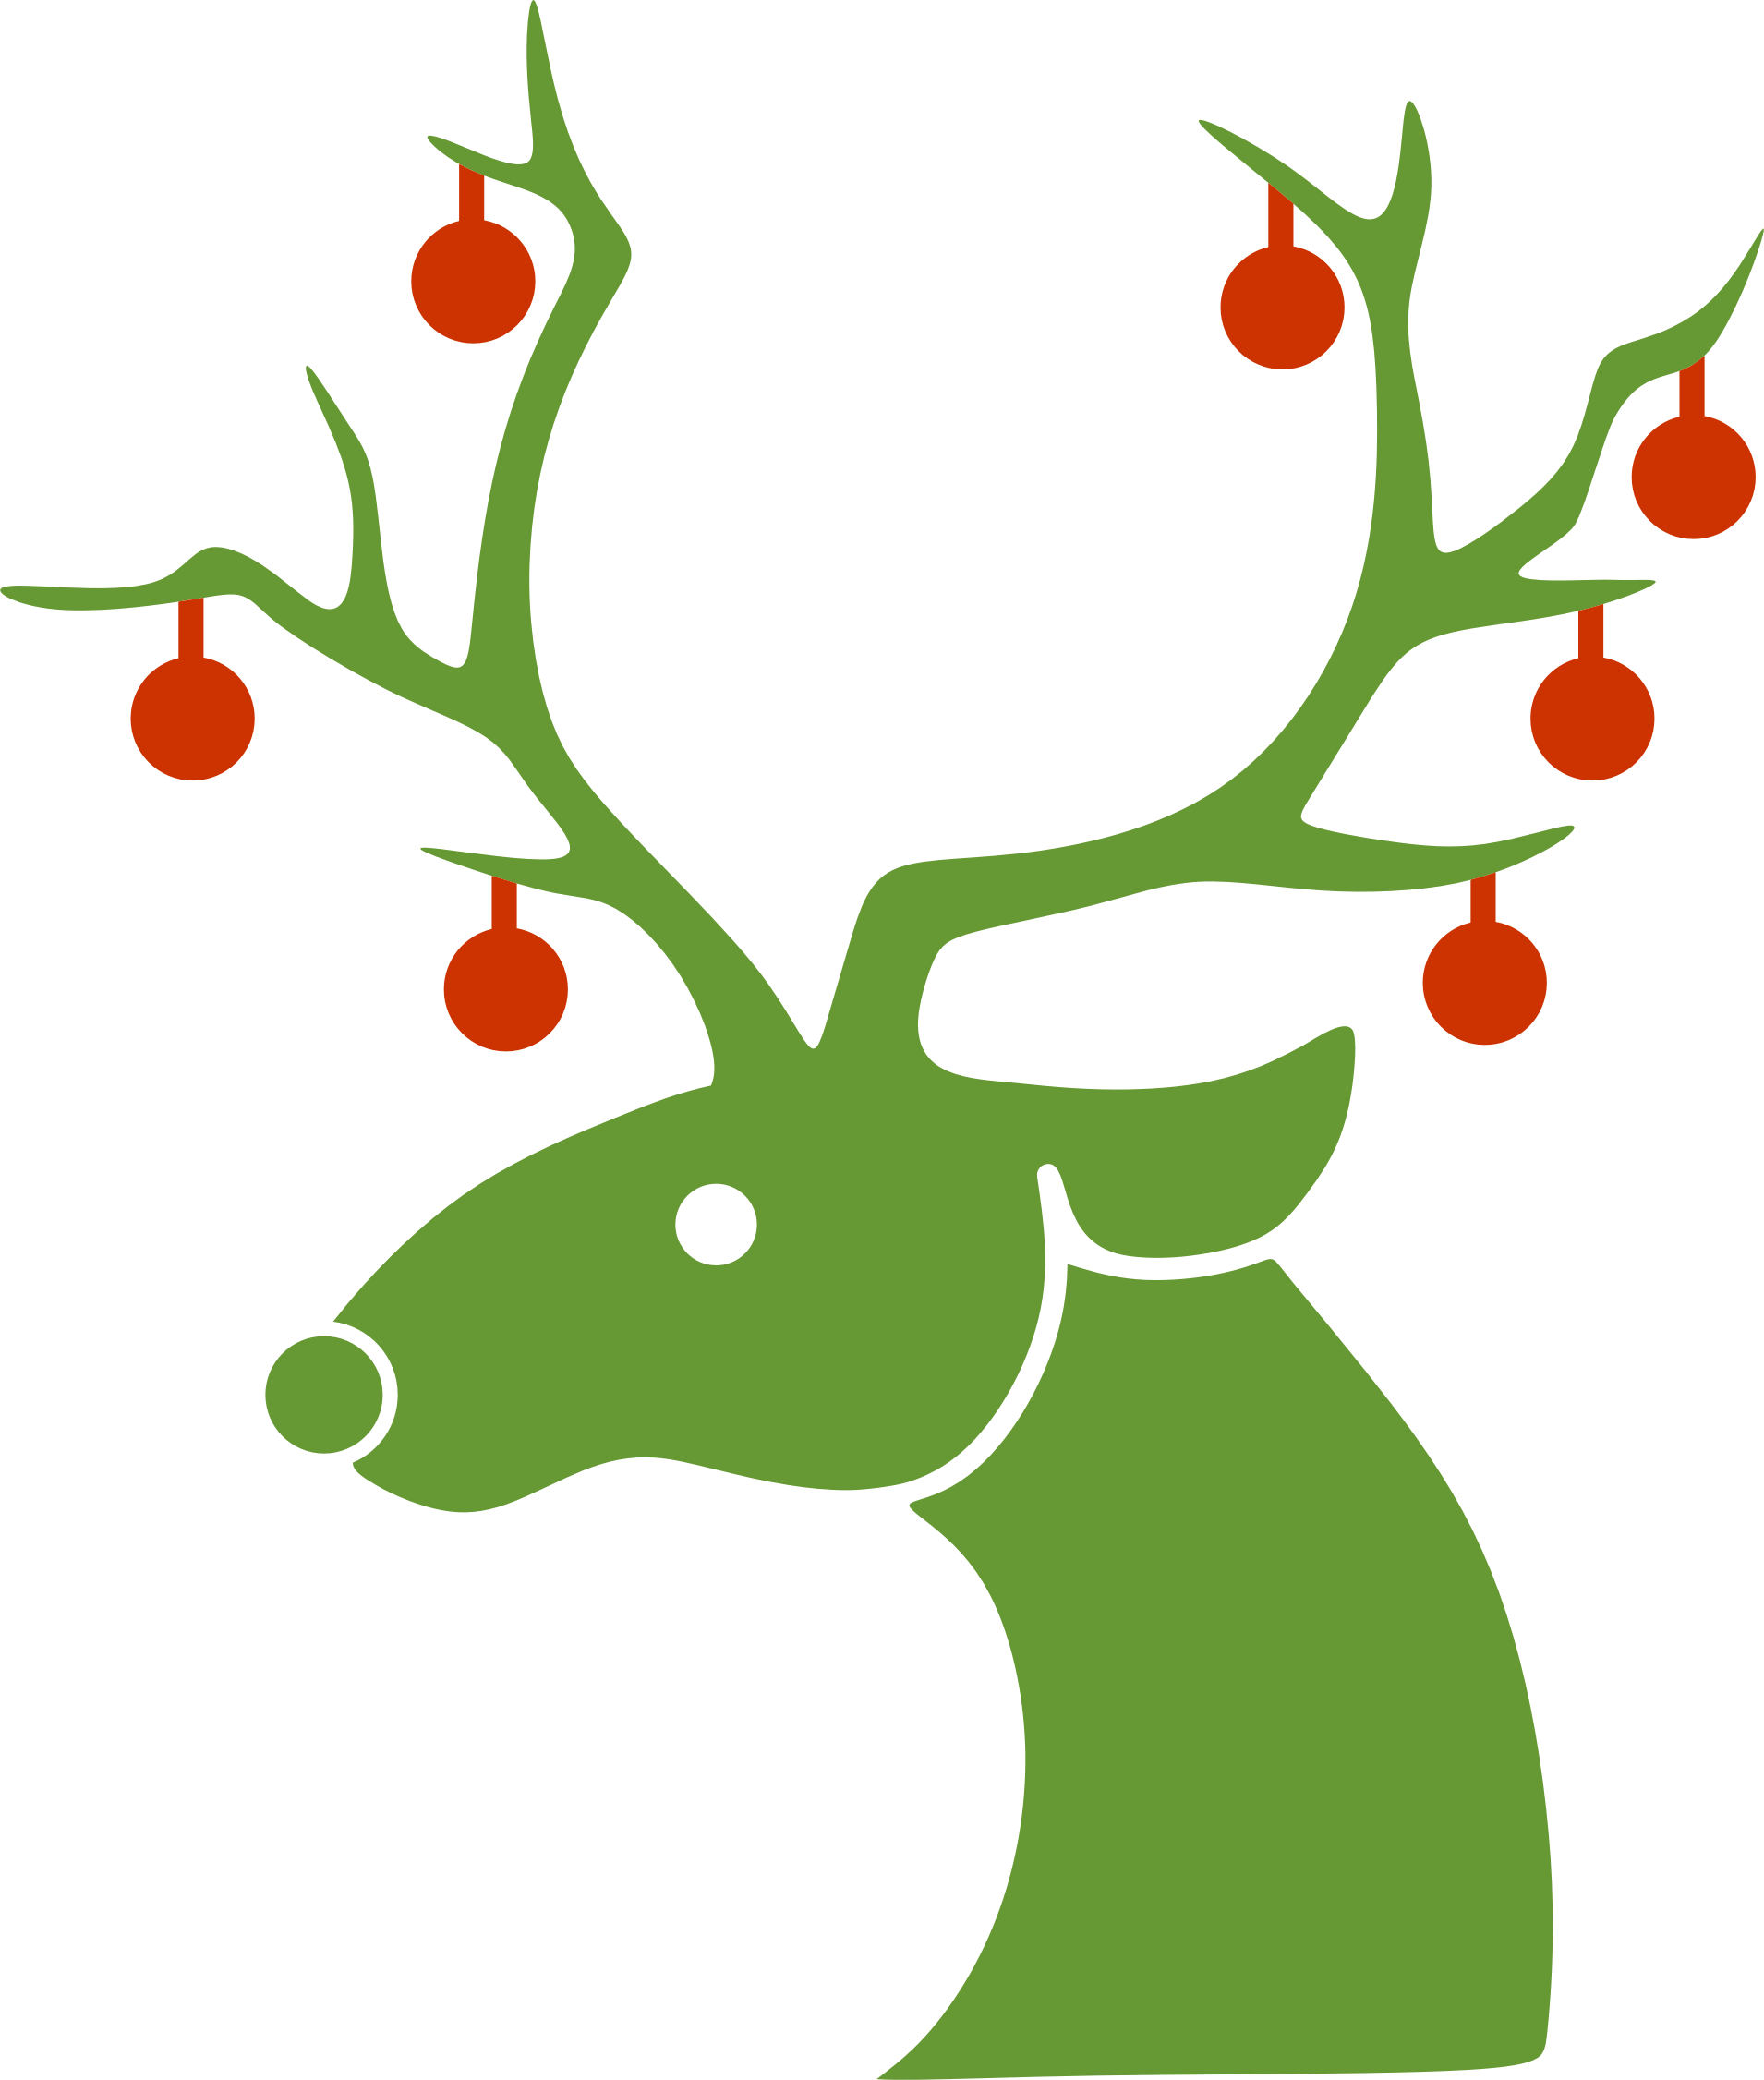 Christmas reindeer clipart - photo#18